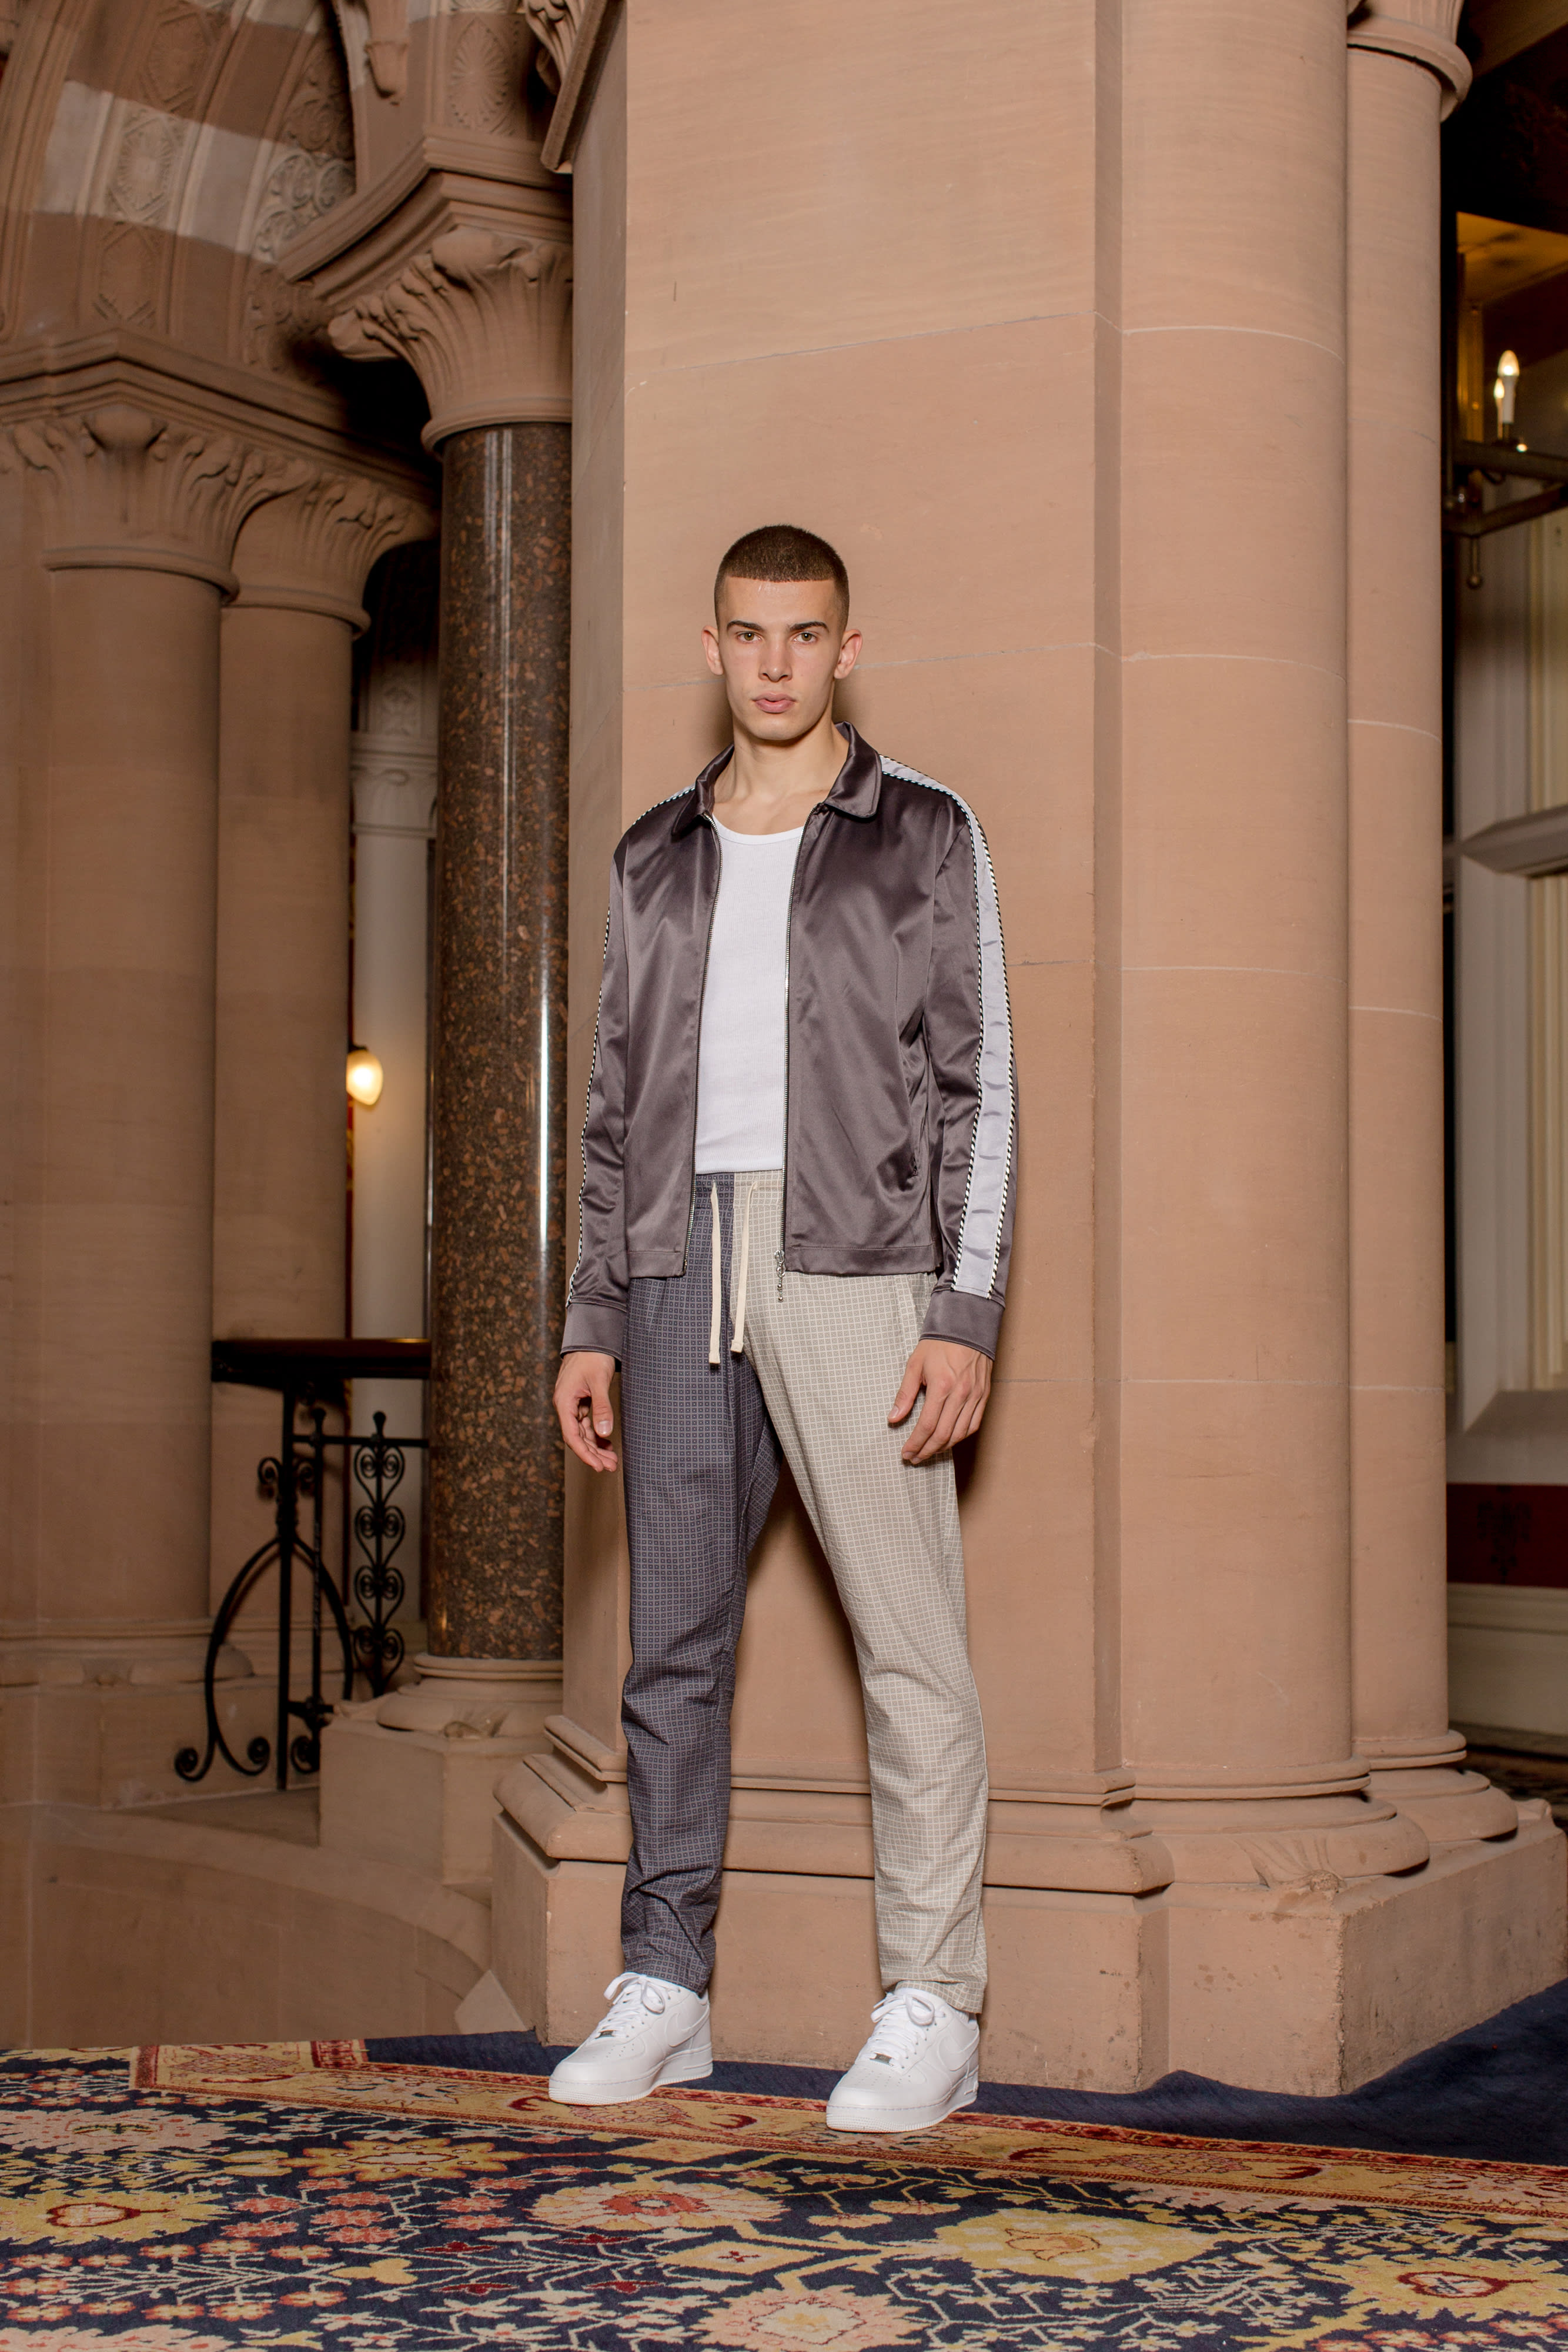 pacifism-fw19-1